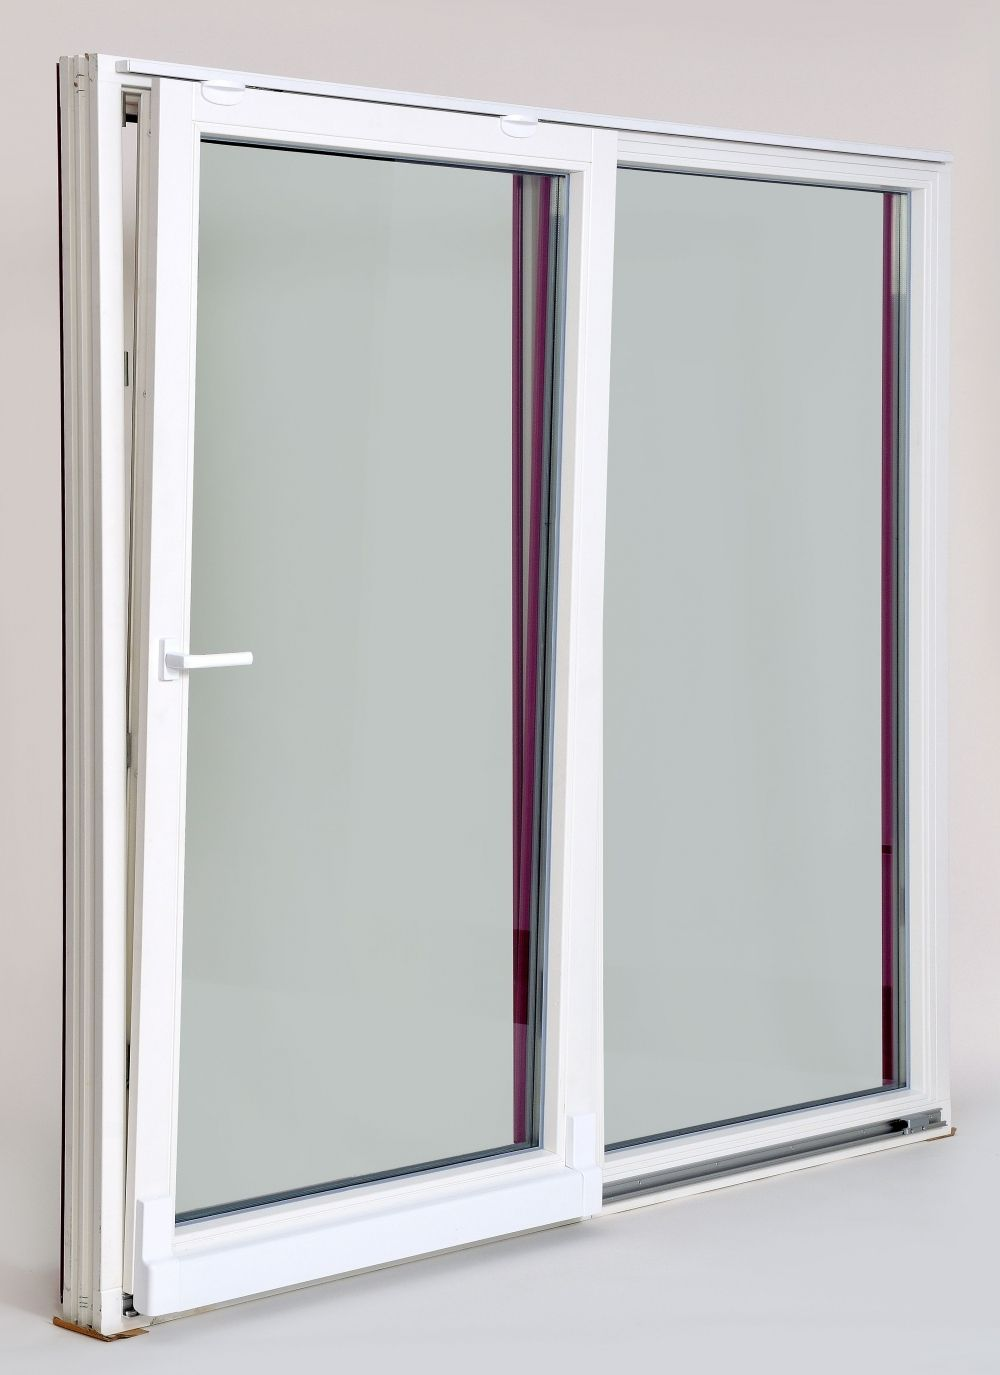 Tilt and slide patio doors google search upvc windows and doors tilt and slide patio doors google search planetlyrics Image collections